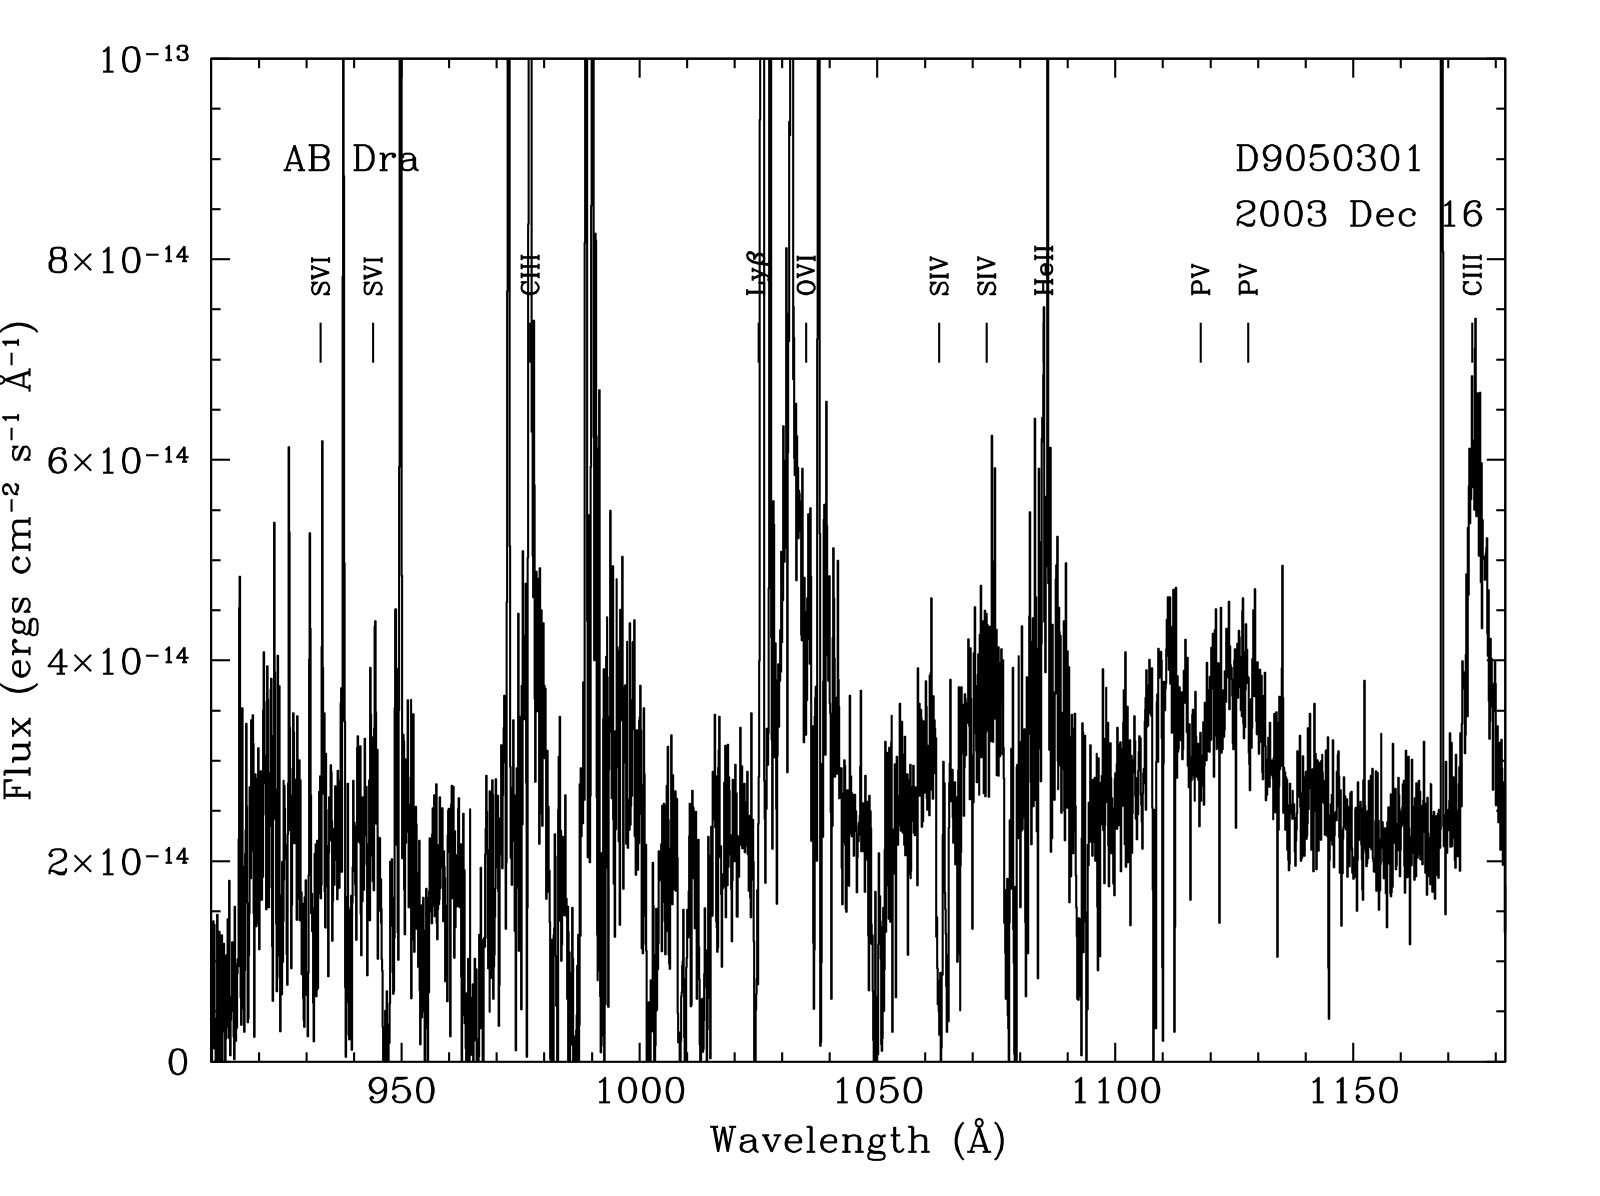 FUSE spectra of AB Dra